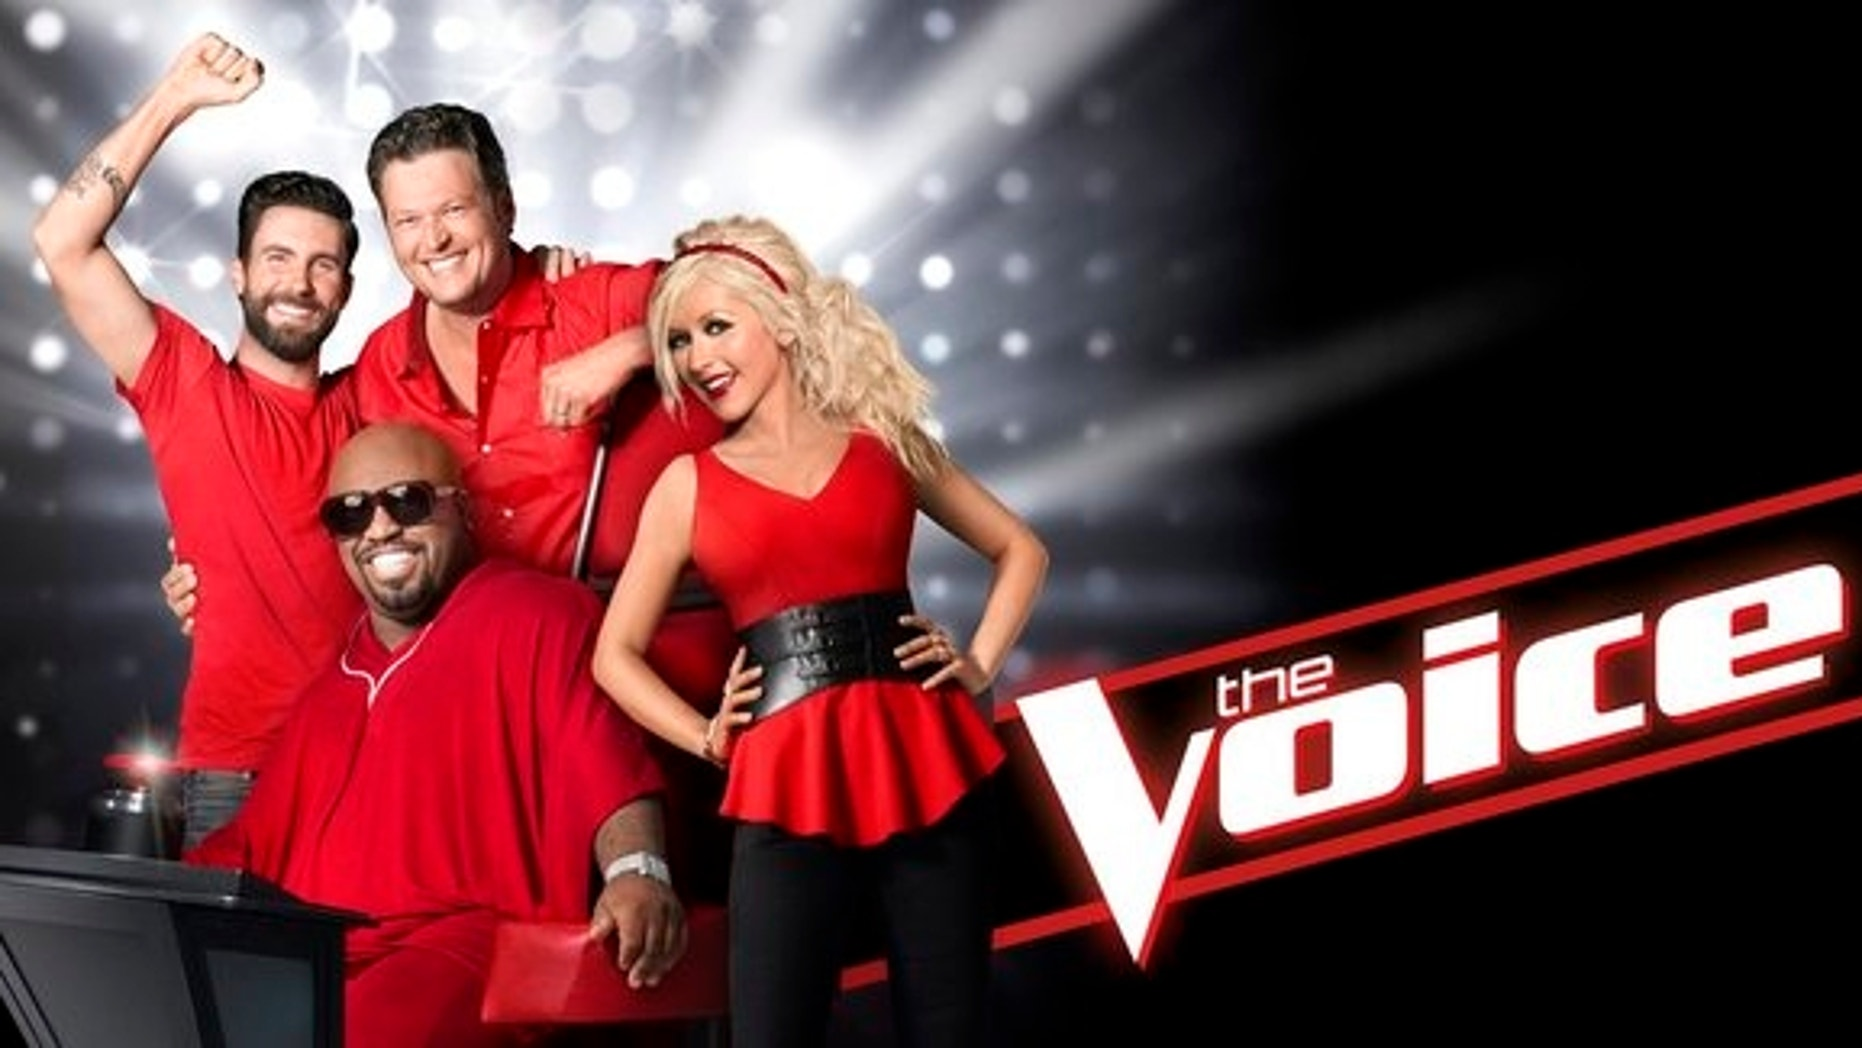 """Adam Levine, CeeLo Green, Blake Shelton and Christina Aguilera pose for a promotional photo for """"The Voice."""""""